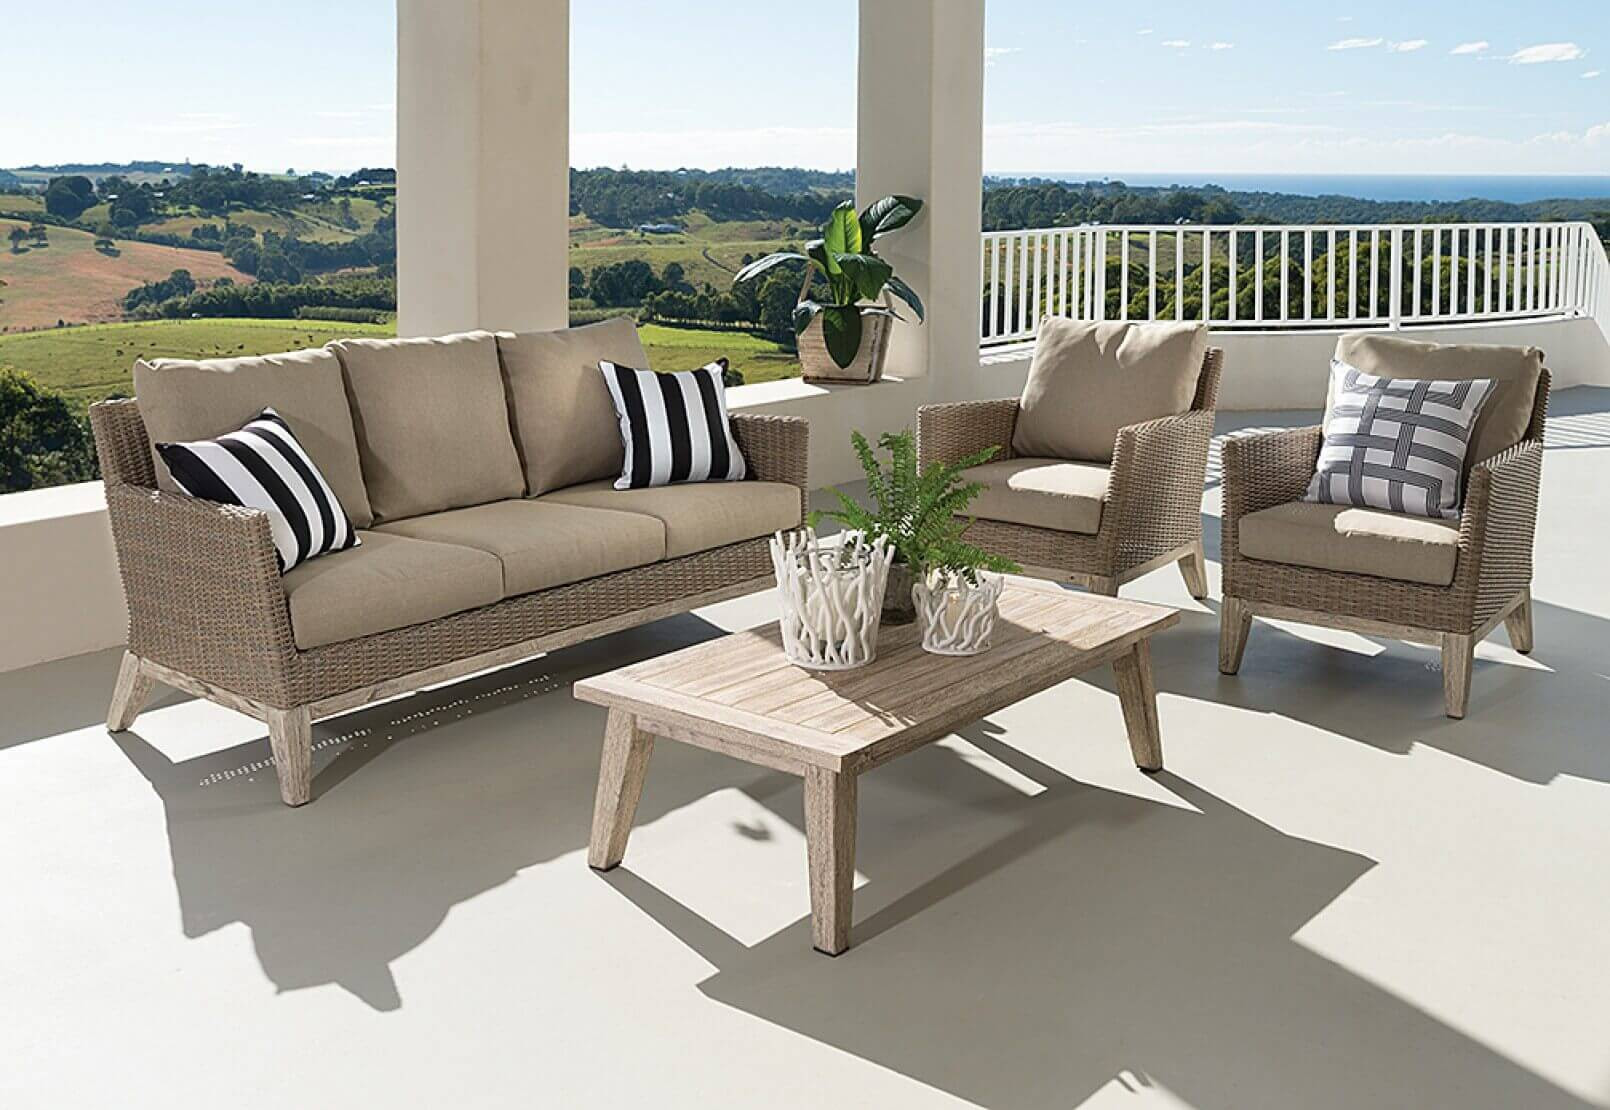 4 Tricks To Maximize Your Outdoor Space - Live Enhanced